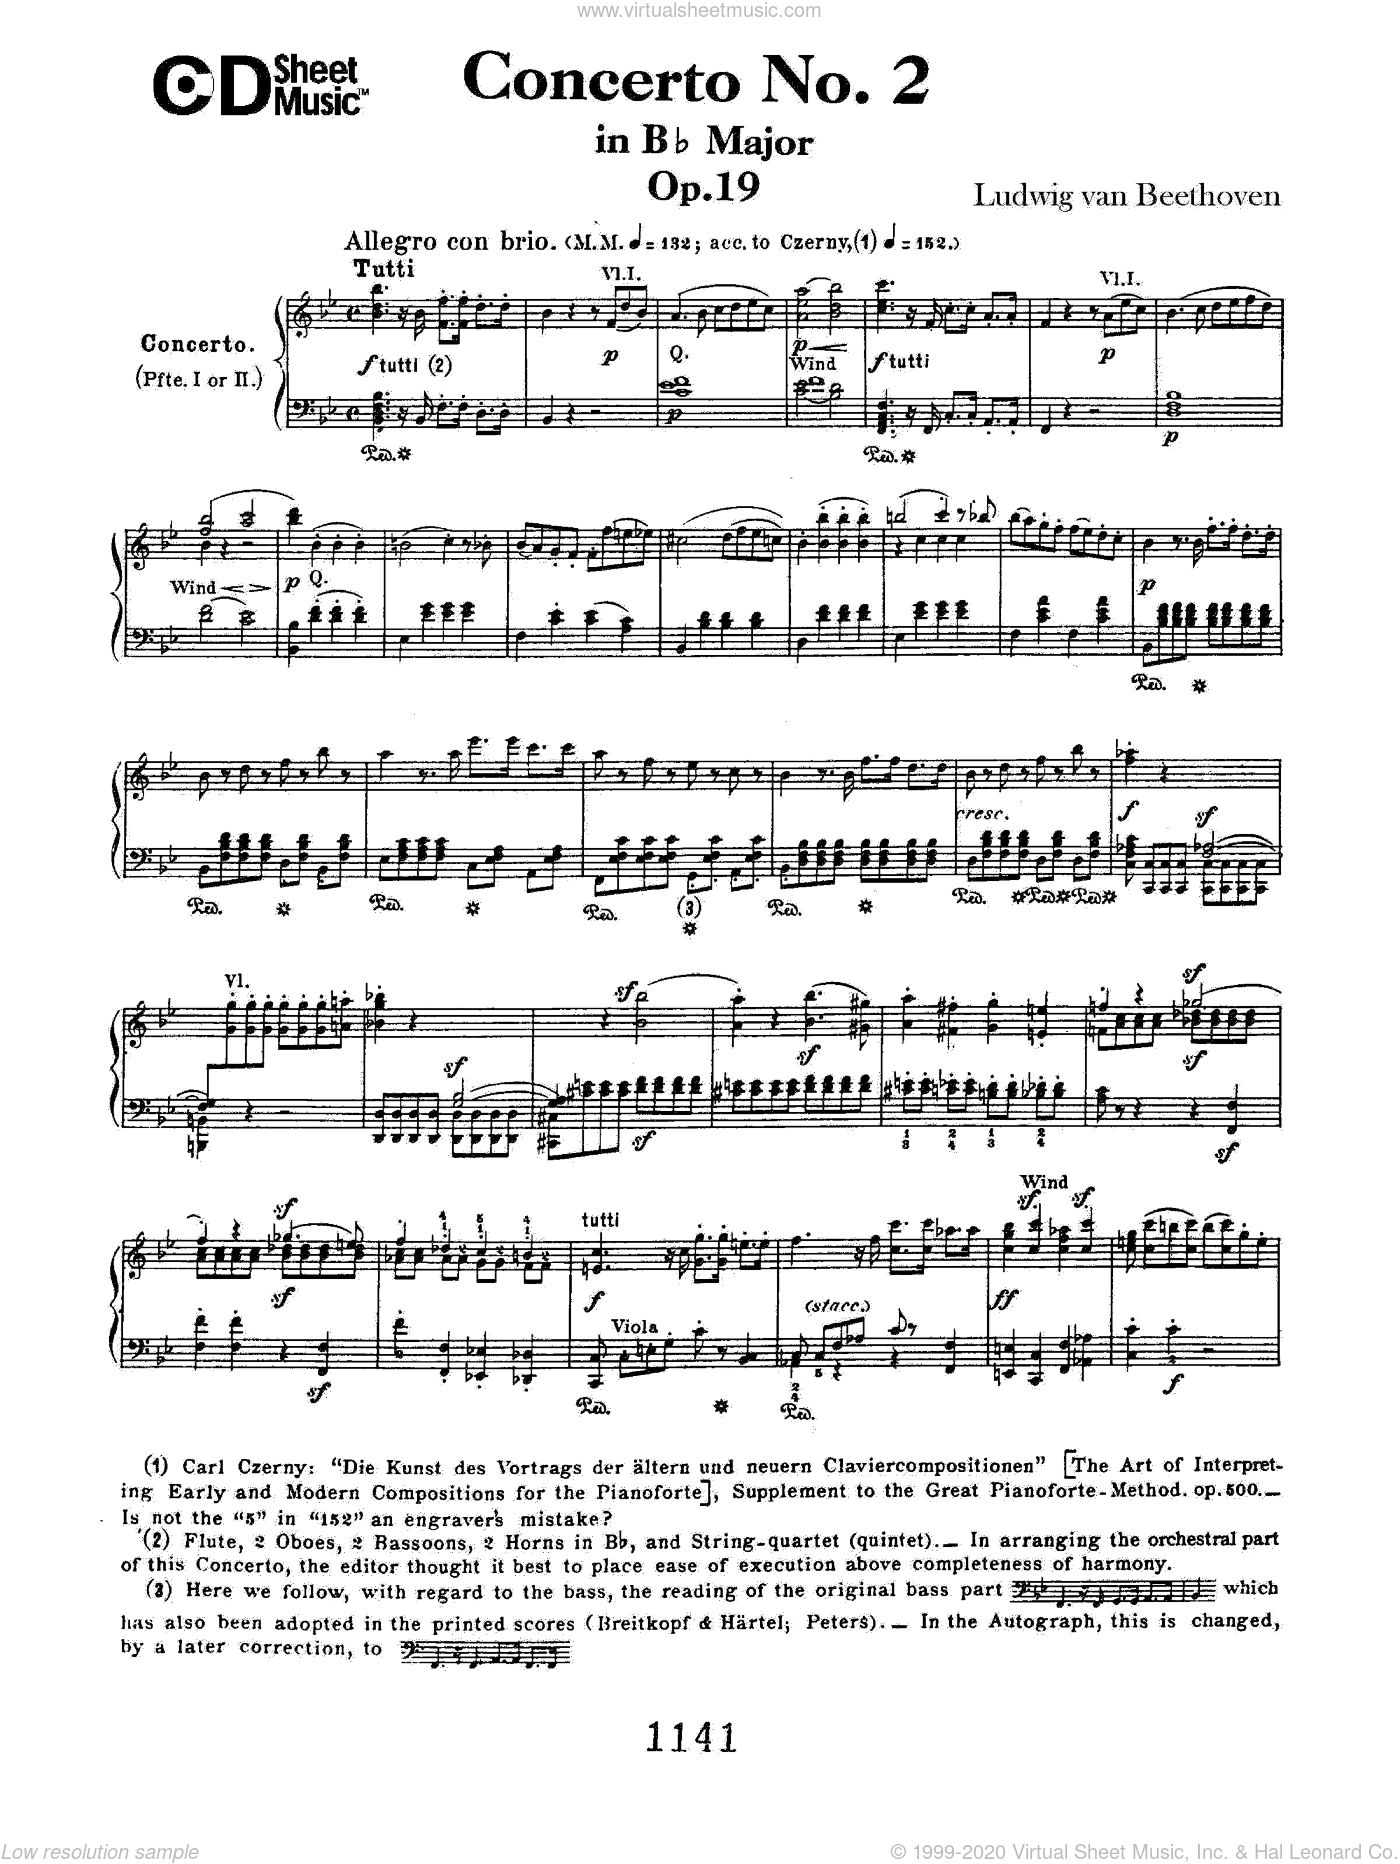 Concerto No. 2 In B-flat Major, Op. 19 sheet music for piano solo by Ludwig van Beethoven. Score Image Preview.